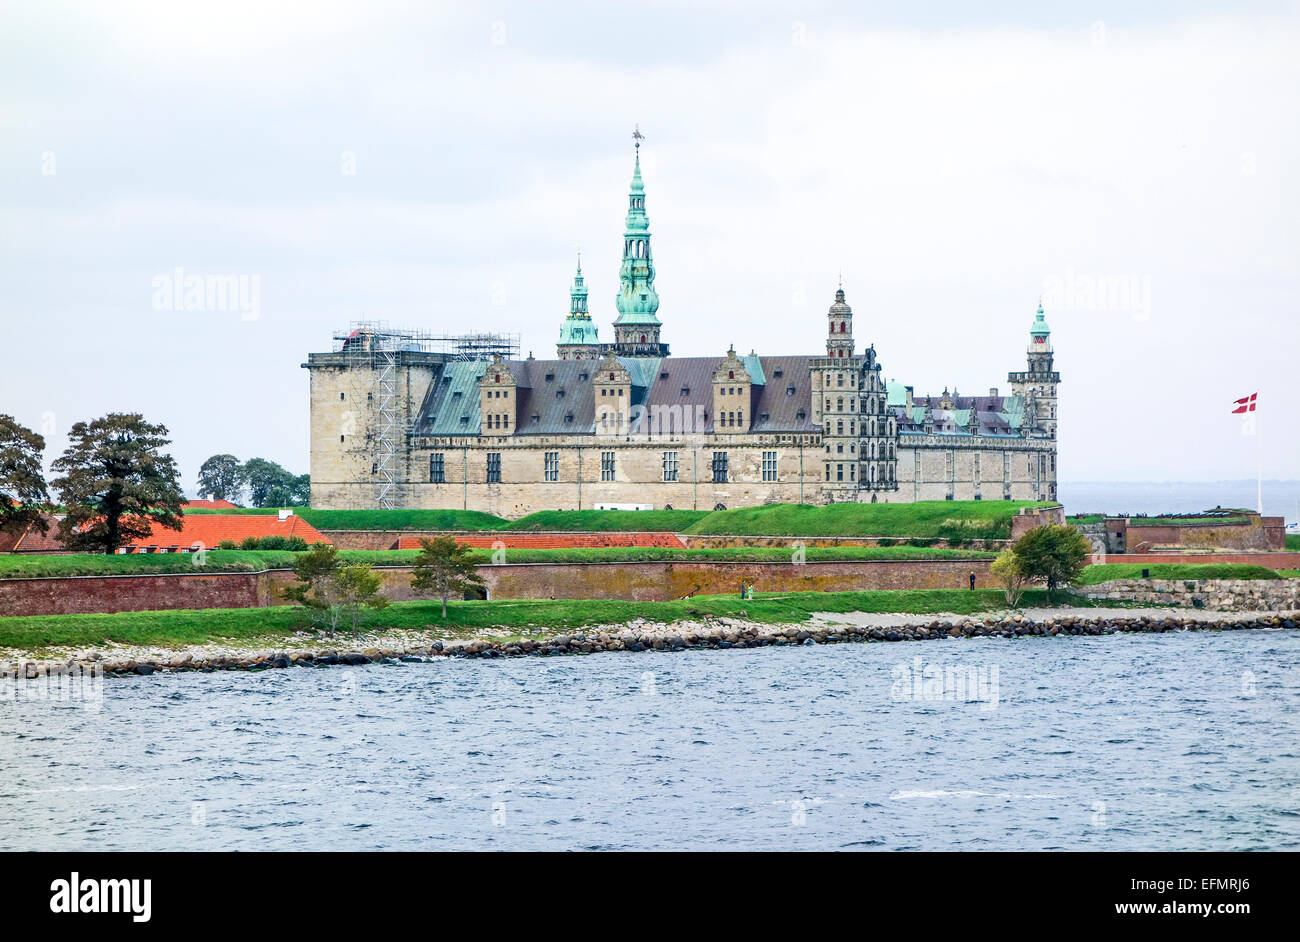 Kronborg Slot Elsinore Denmark from Oeresund - Stock Image